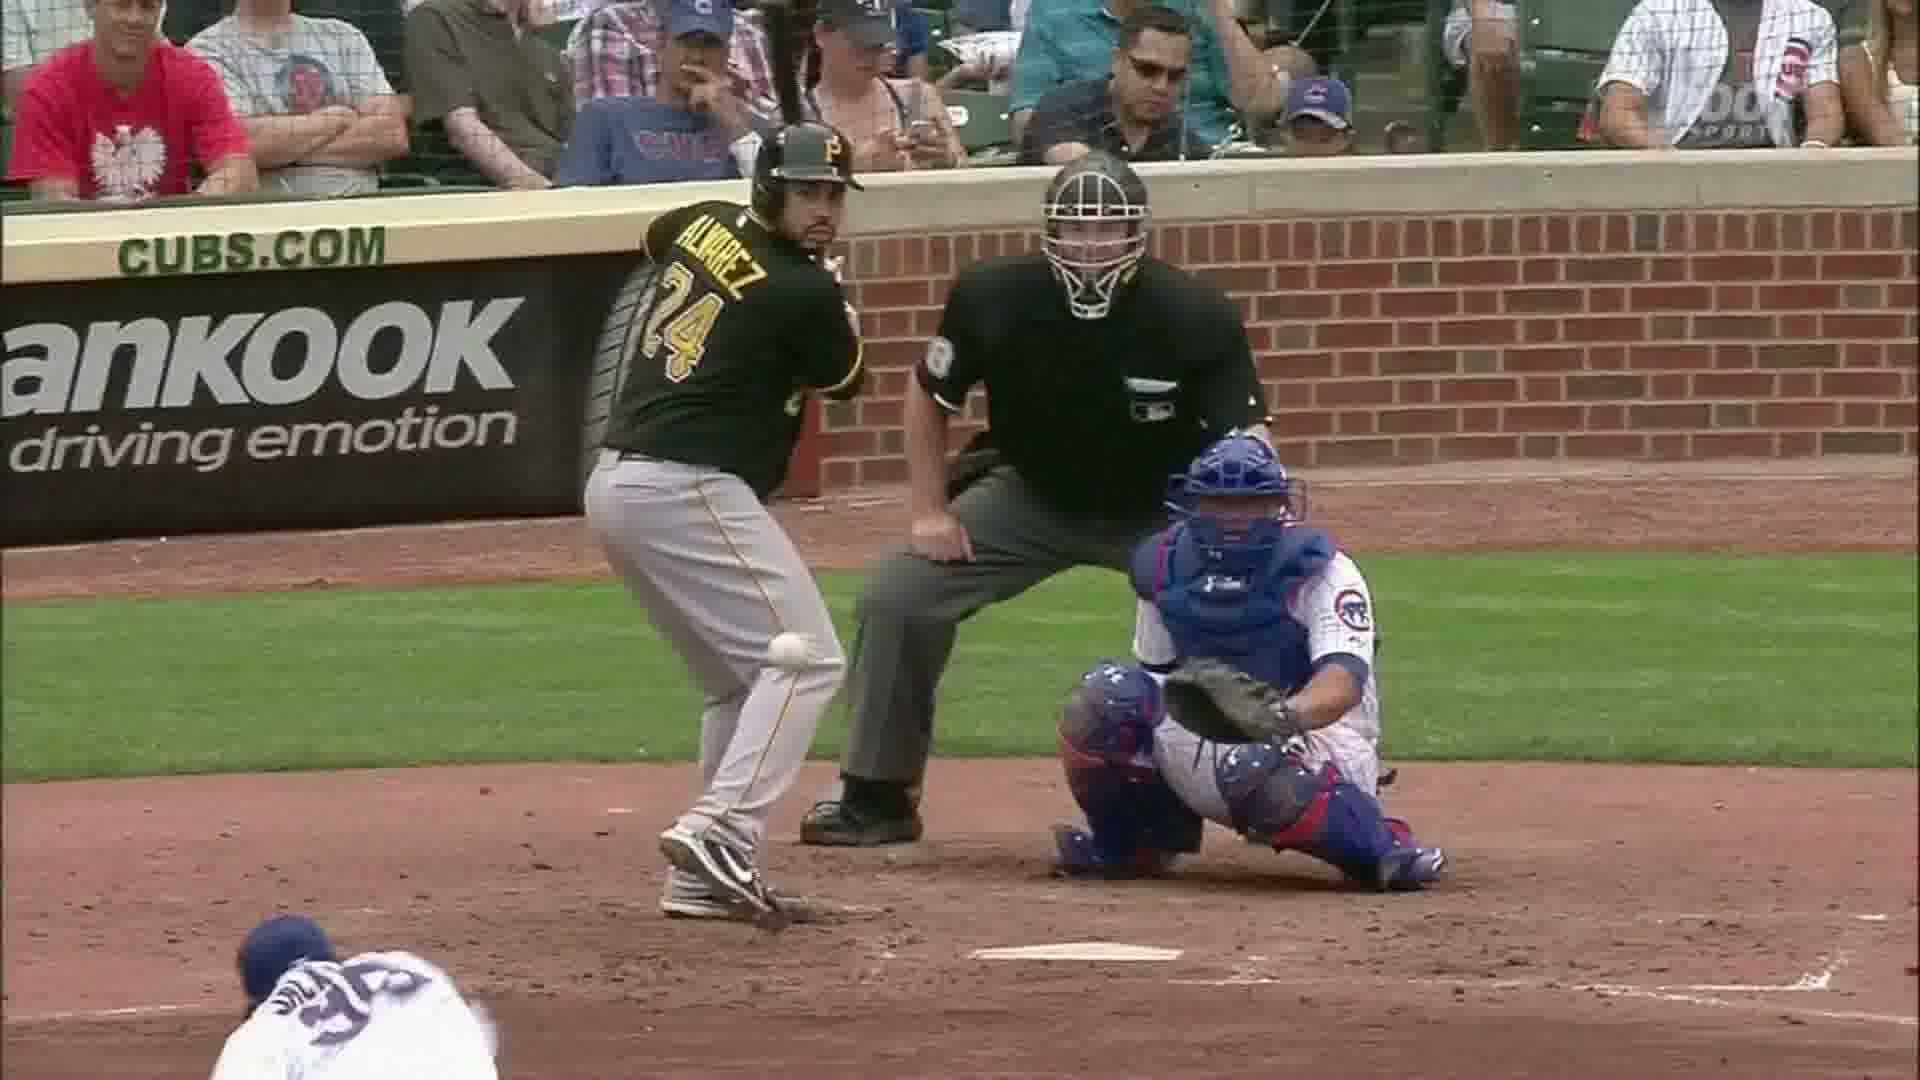 Pedro Alvarez home run